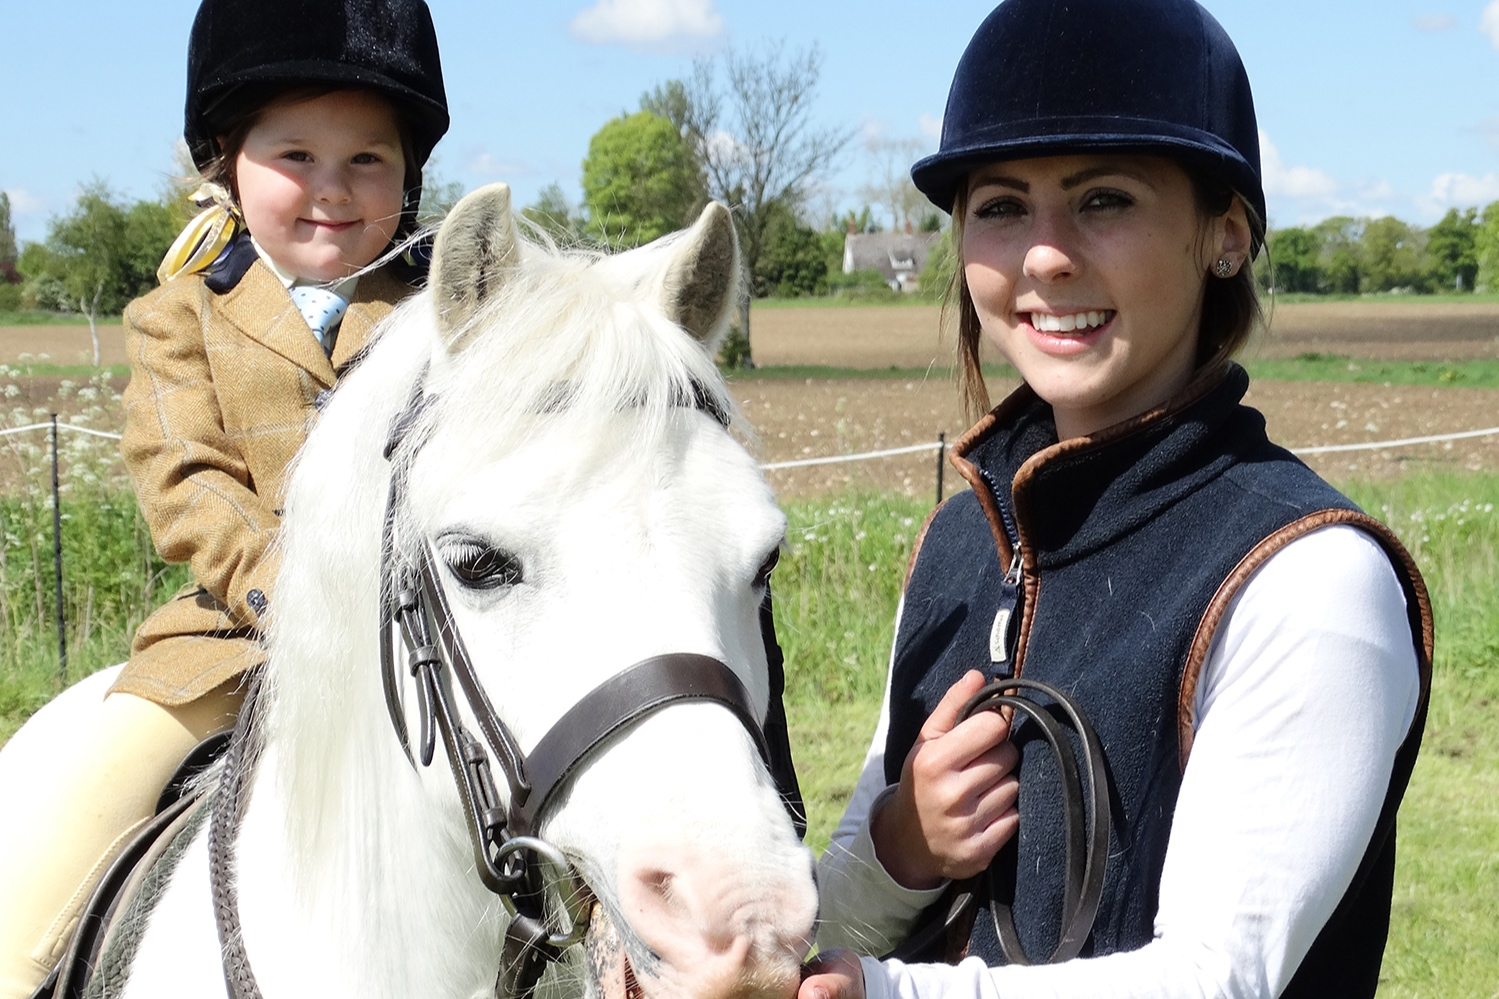 Alongside traditional ridden and in-hand showing classes, the event provided dedicated novice and just for fun rings where those new to showing could hone their skills.